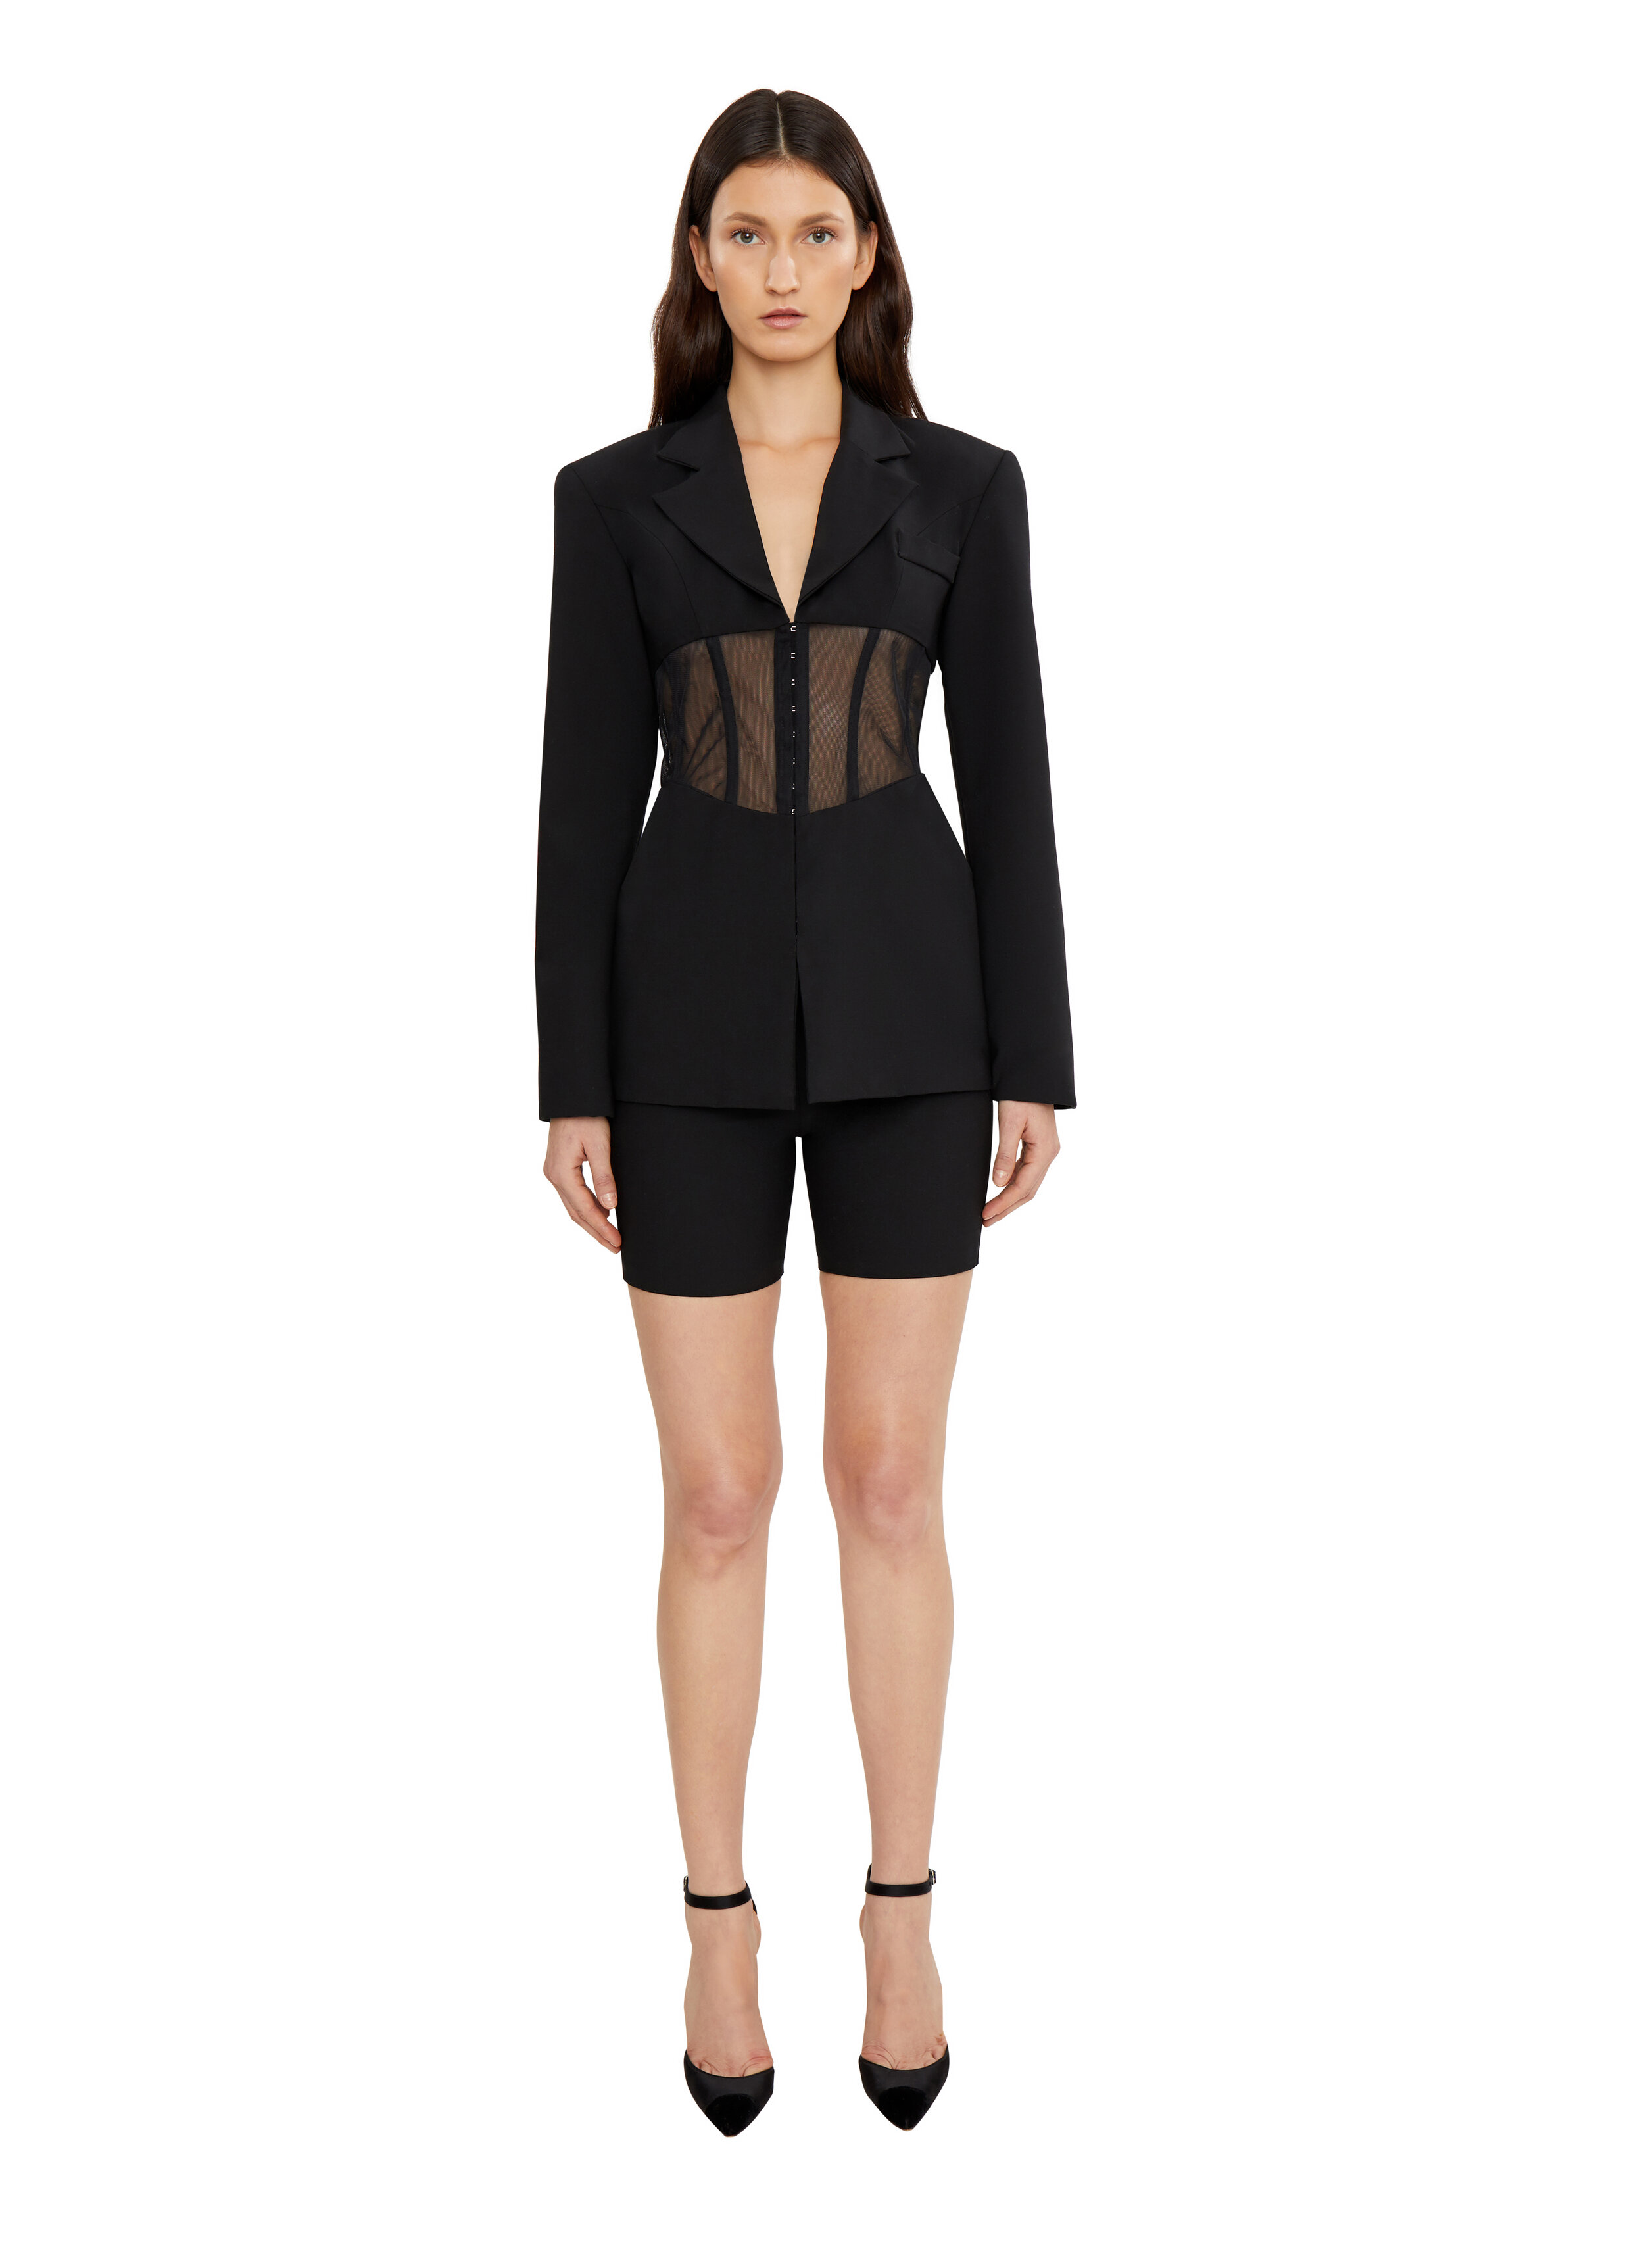 CORSET BLAZER by Danielle Guizio, available on danielleguiziony.com for $468 Kendall Jenner Outerwear SIMILAR PRODUCT